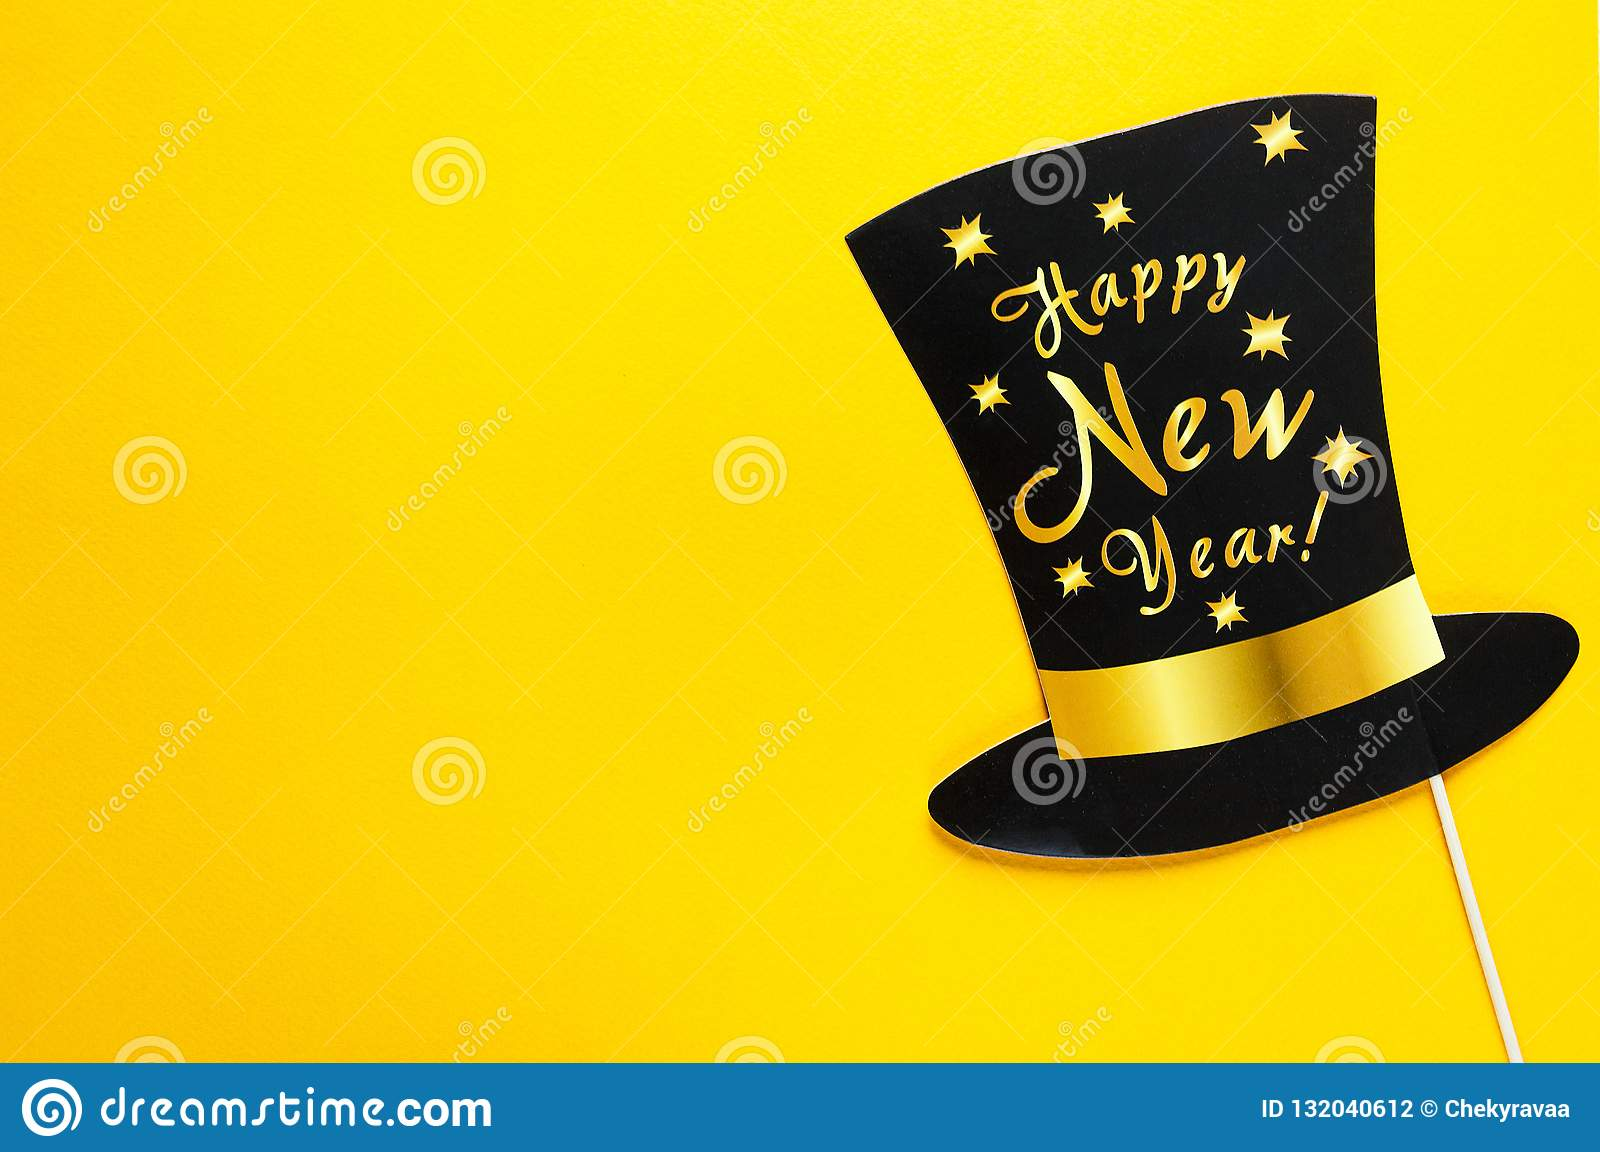 Cute party props accessories on colorful yellow background, happy new year party celebration and holiday concept